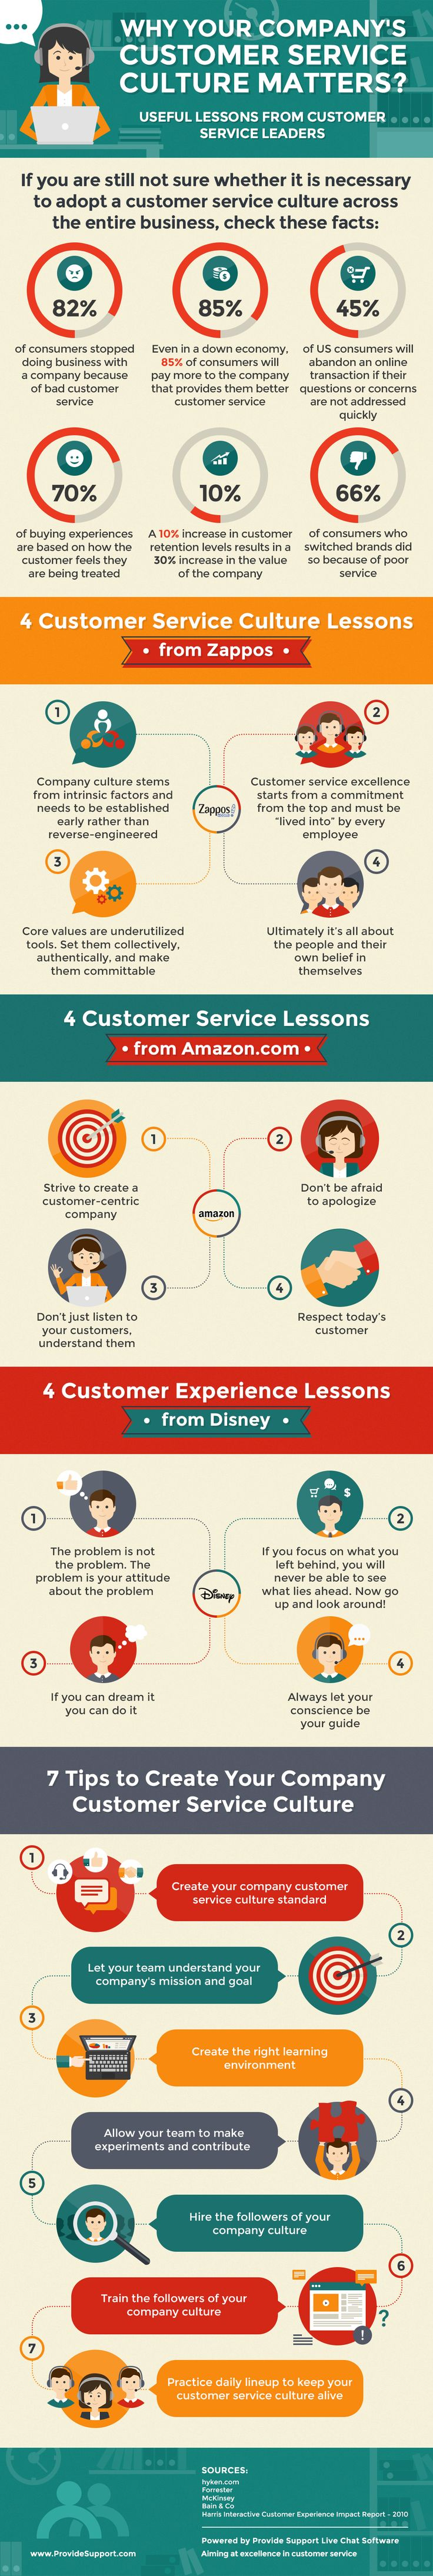 Customer Service Culture - There are always a lot of obstacles which prevent your customer service from being perfect. However, if you develop the right strategy and follow it, you will succeed. (http://www.providesupport.com/blog/why-your-companys-customer-service-culture-matters-infographic/)